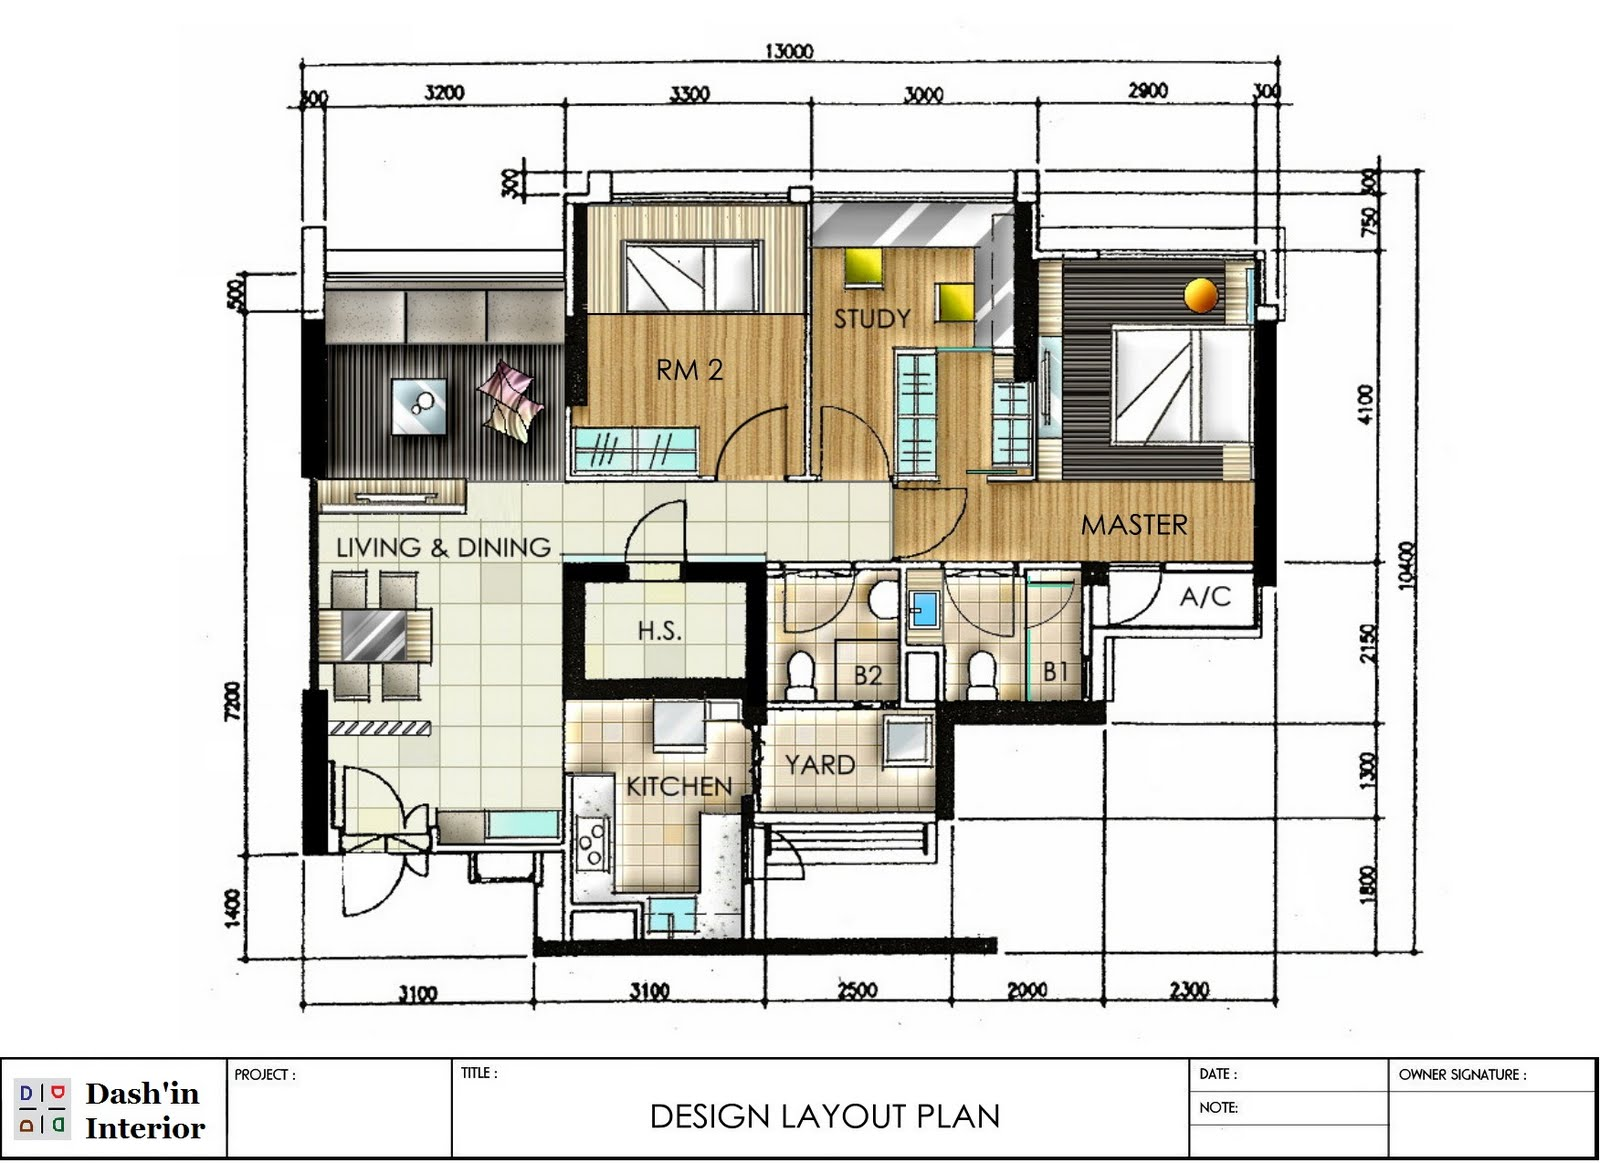 Dash 39 in interior hand drawn designs floor plan layout for Small apartment layout plans